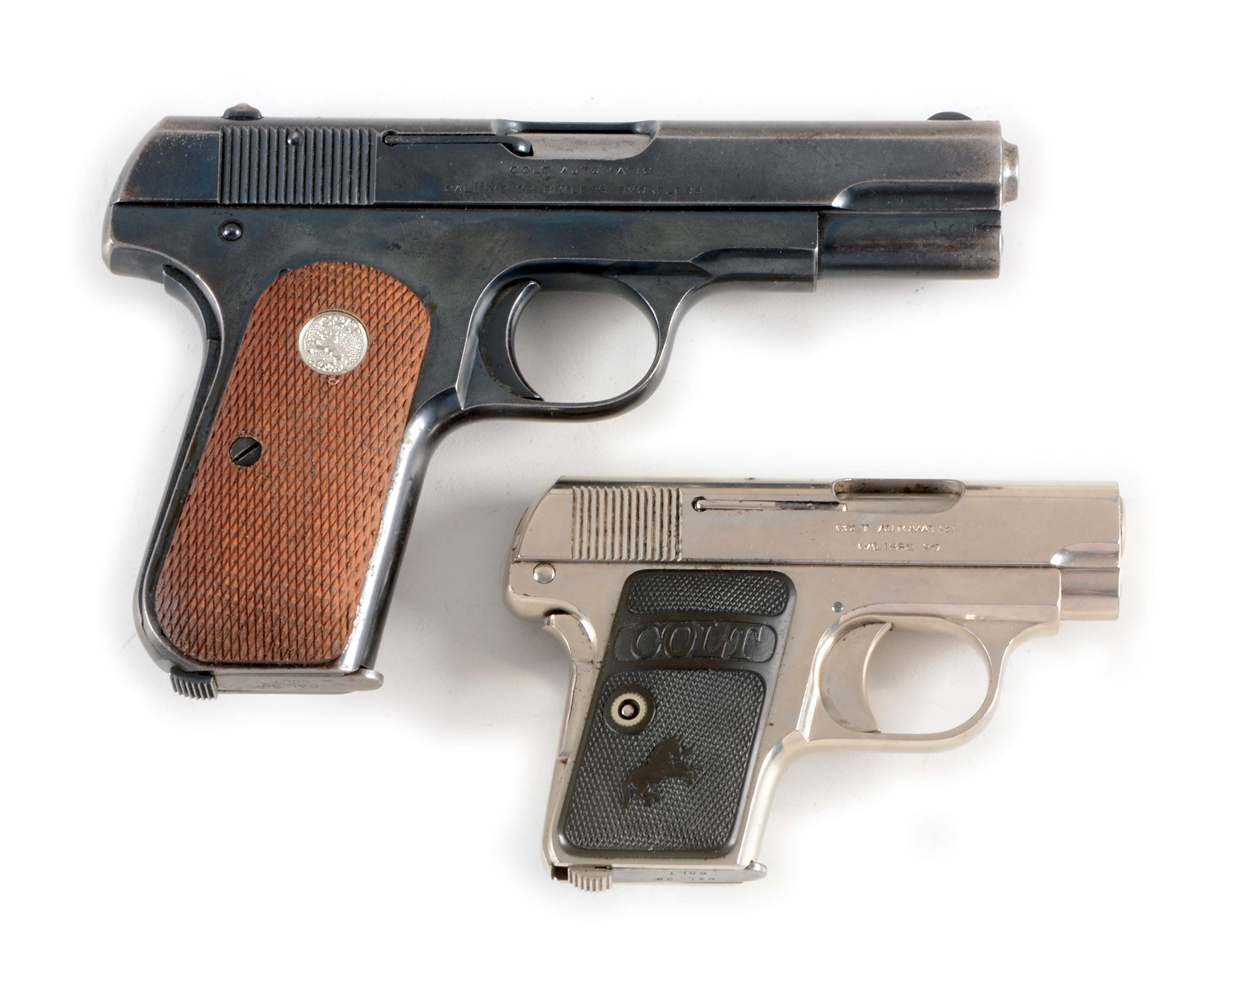 (C) LOT OF TWO: TWO COLT SEMI-AUTOMATIC PISTOLS MADE IN 1919 - TYPE M & TYPE N.